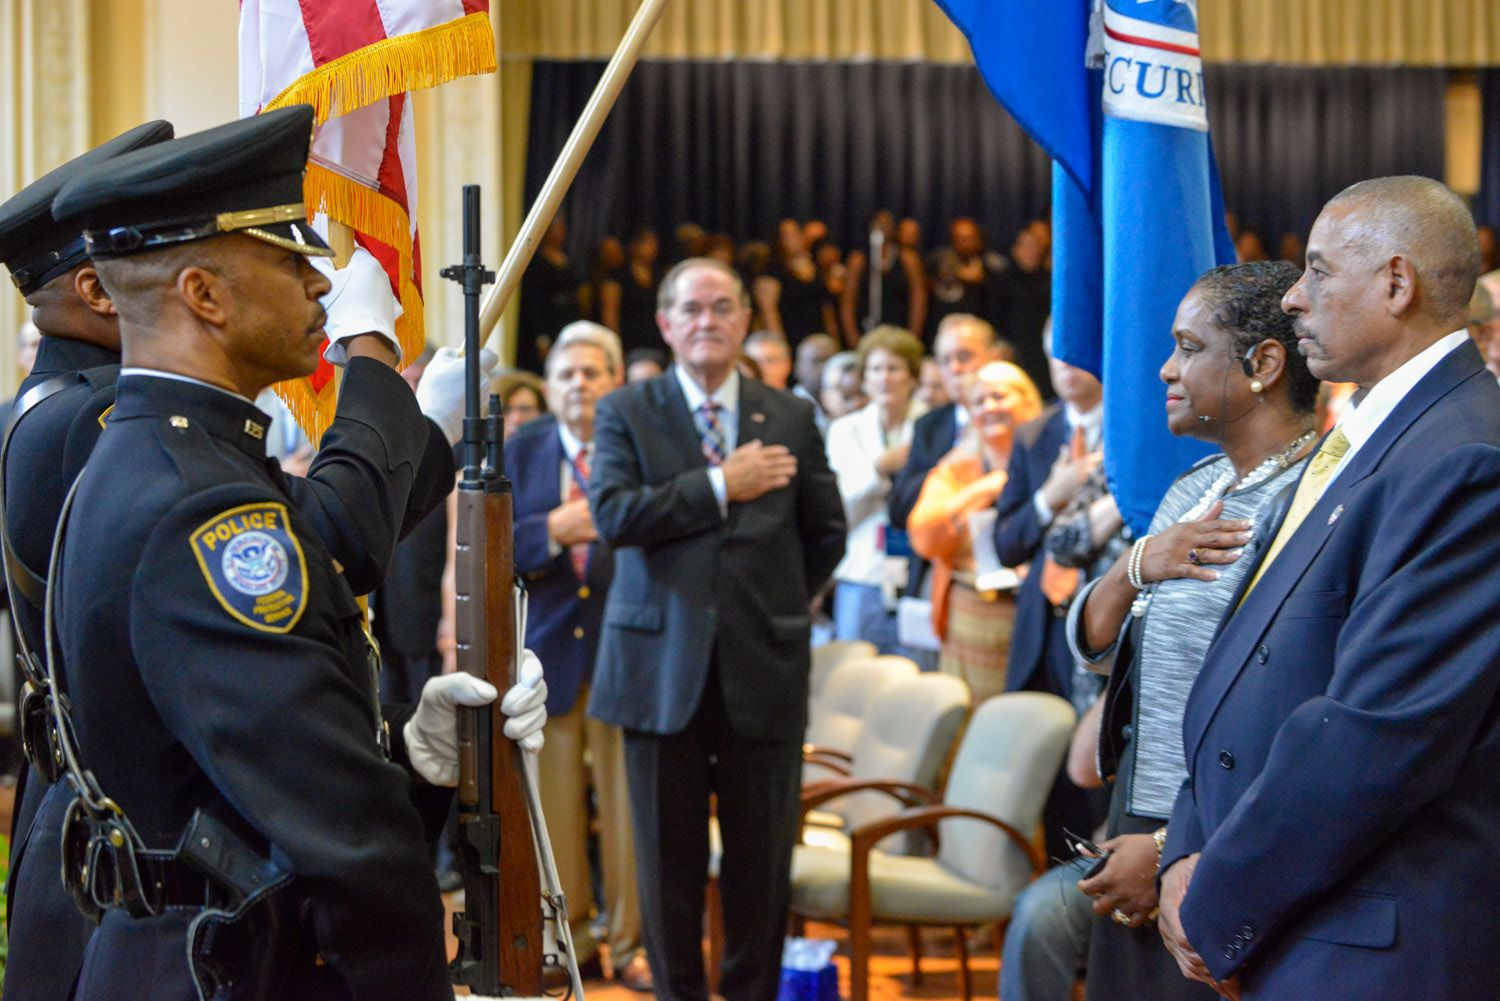 The presentation of the colors by dhss federal protective